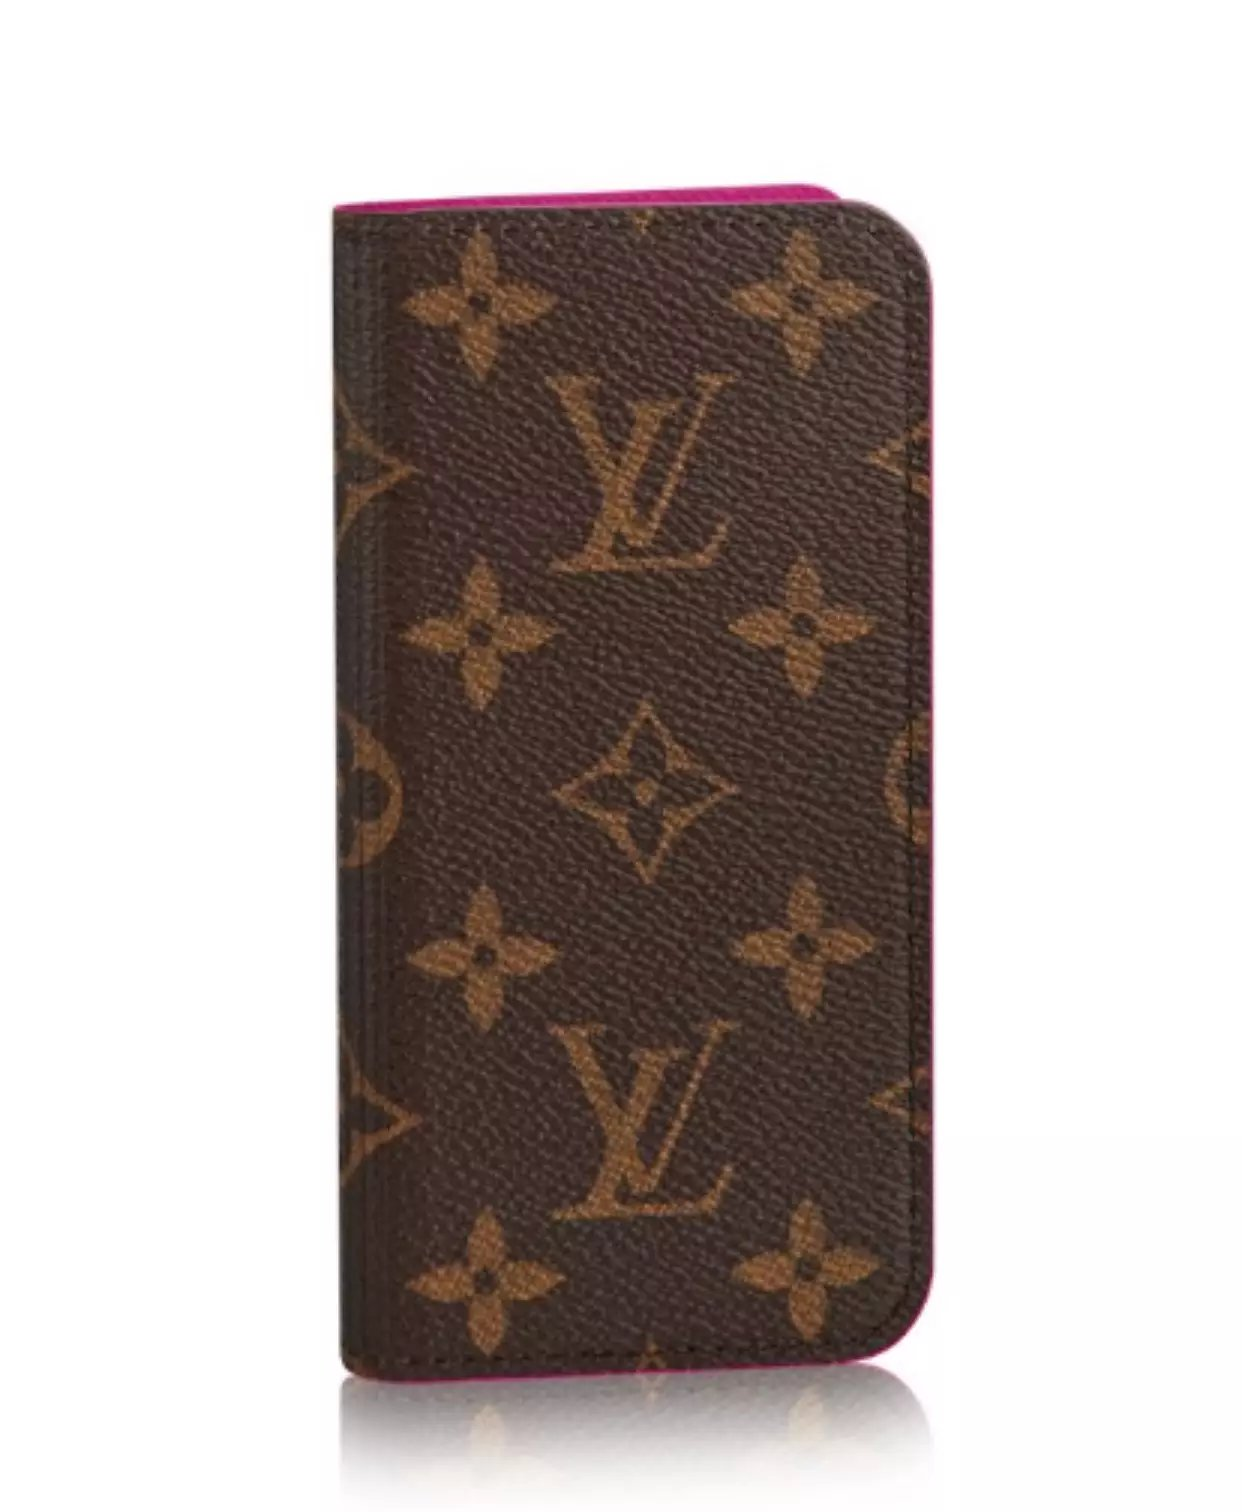 günstige iphone hüllen designer iphone hüllen Louis Vuitton iphone 8 hüllen leder iphone hülle iphone 8 hülle marken billige handyhüllen handy hüllen samsung gala8y s8 hülle für iphone iphone hülle laufen